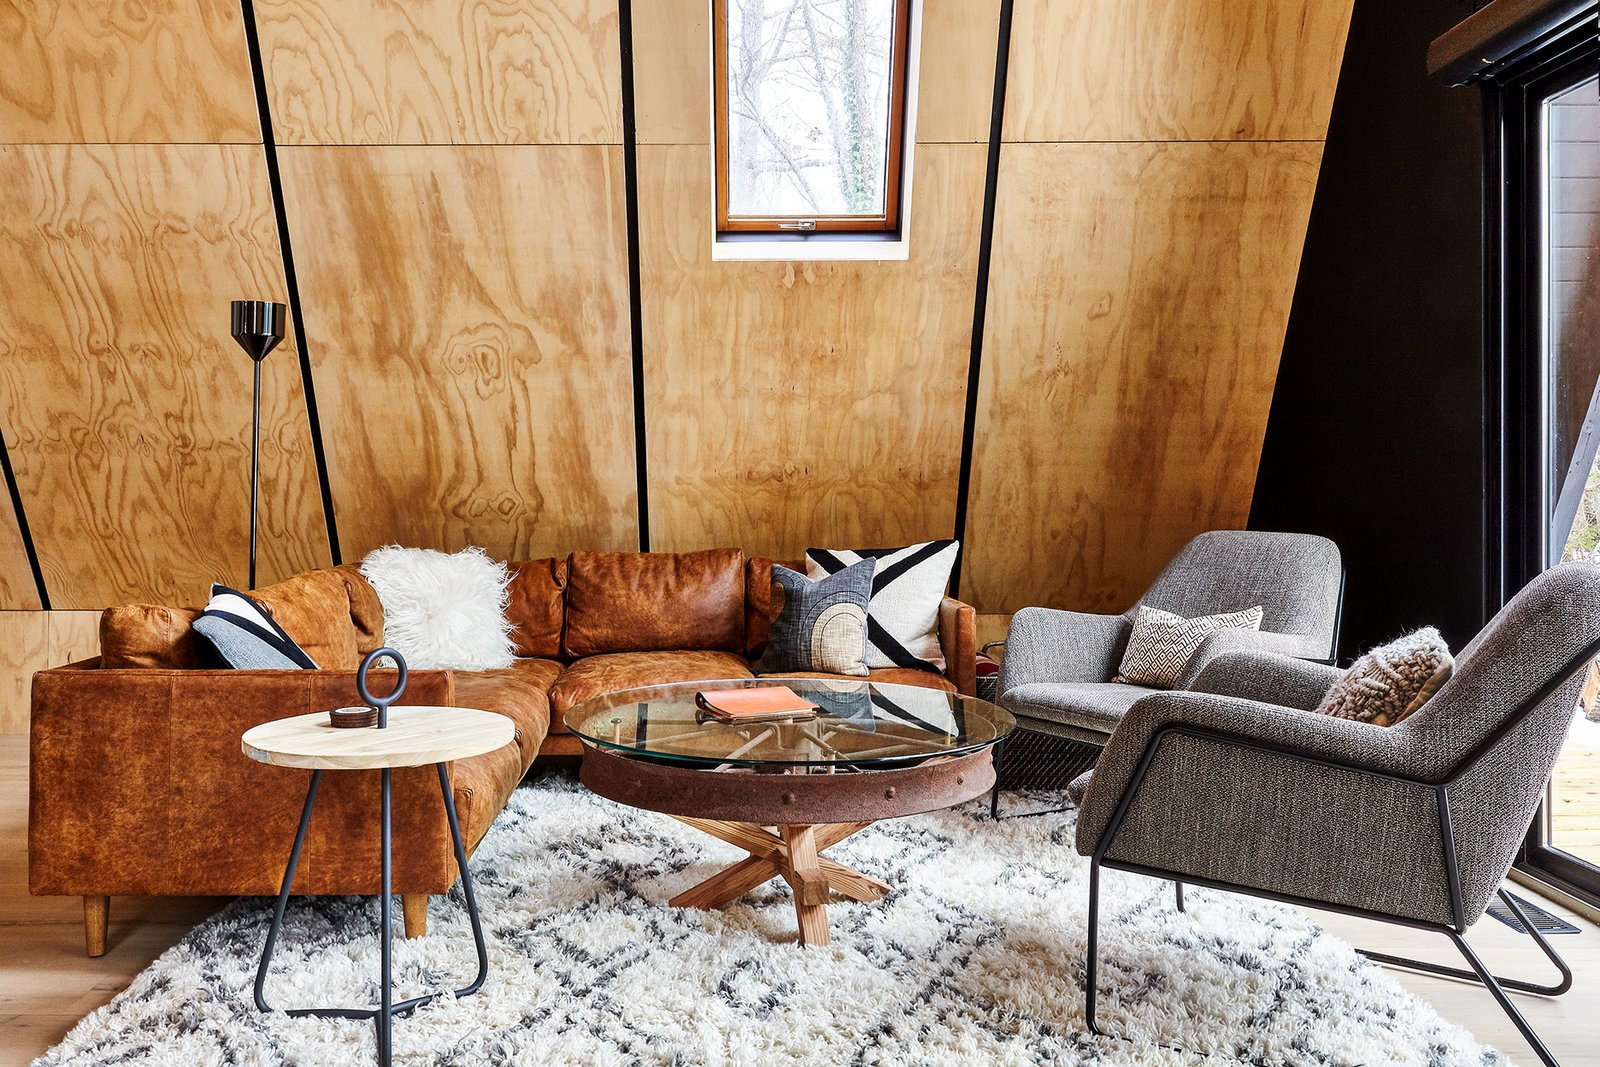 Living, Light Hardwood, Sectional, Coffee Tables, Floor, End Tables, Chair, Lamps, and Rug Living room with furnishings by Article & custom wagon wheel table by Ovuud  Living Light Hardwood Sectional Lamps Photos from Lokal A-Frame